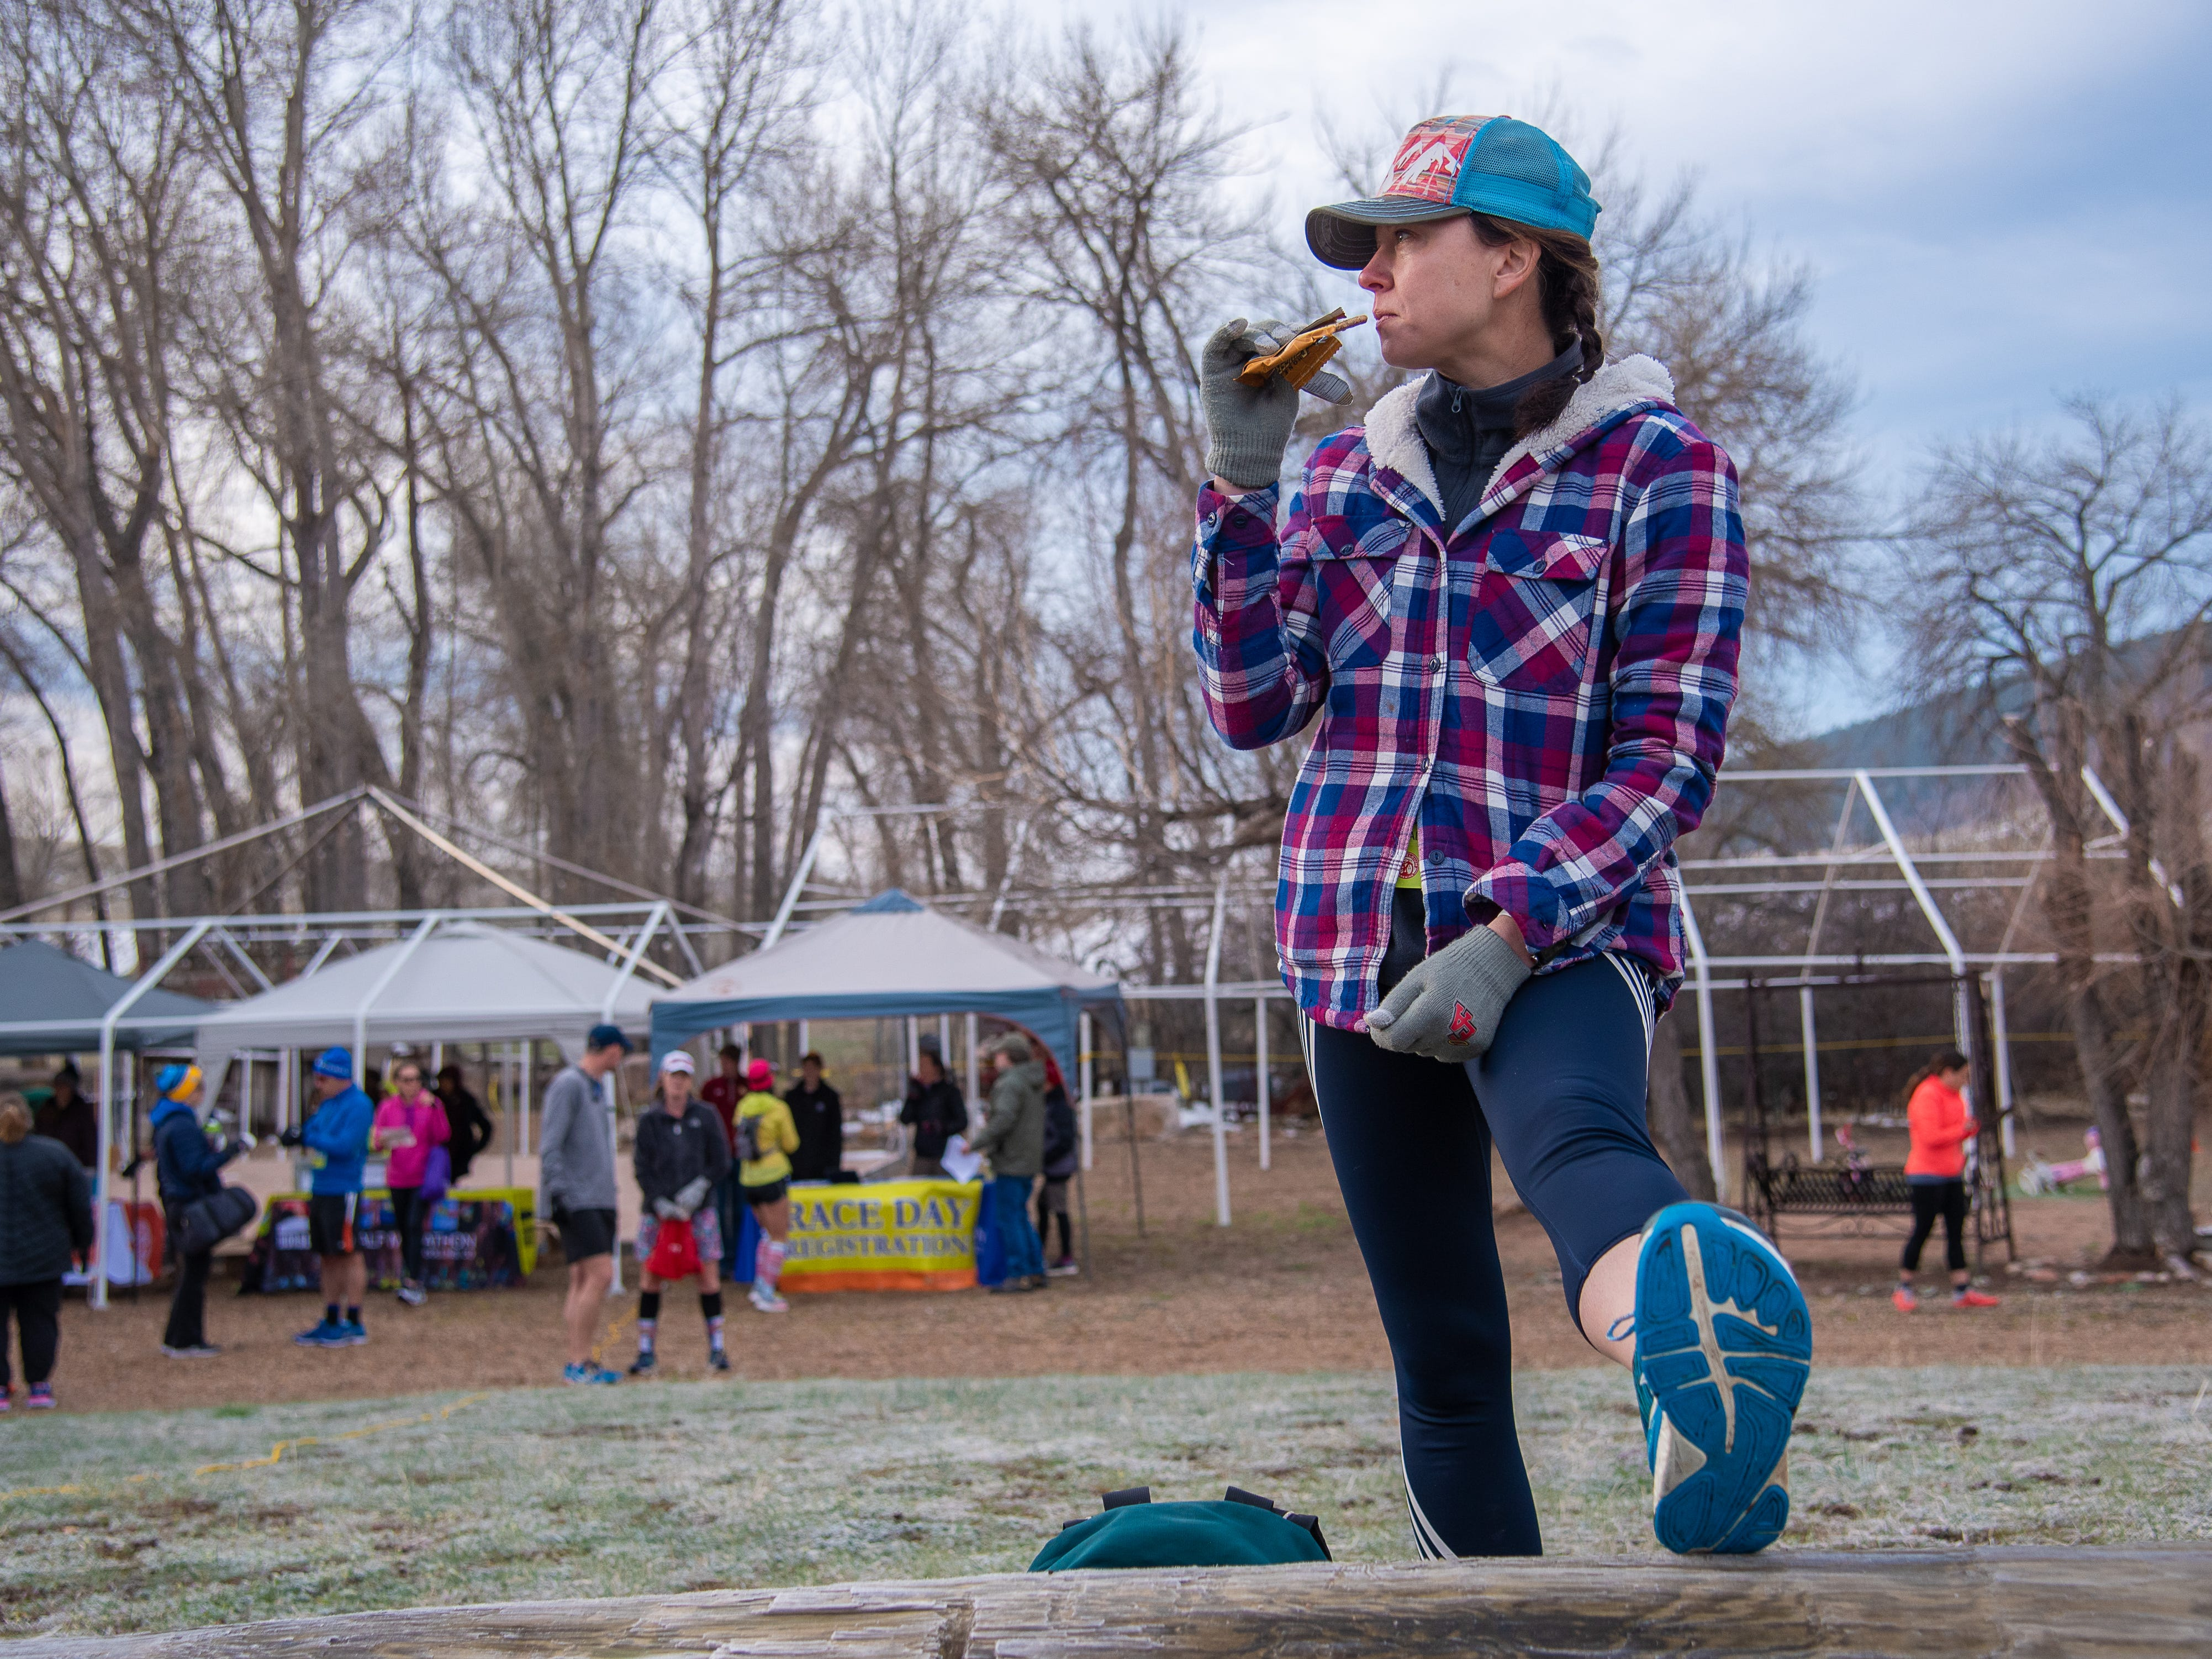 Participant Lindsey Vesceri eats a power snack and limbers up before the start of the Horsetooth Half Marathon on Sunday, April 14, 2019, in Fort Collins, Colo.